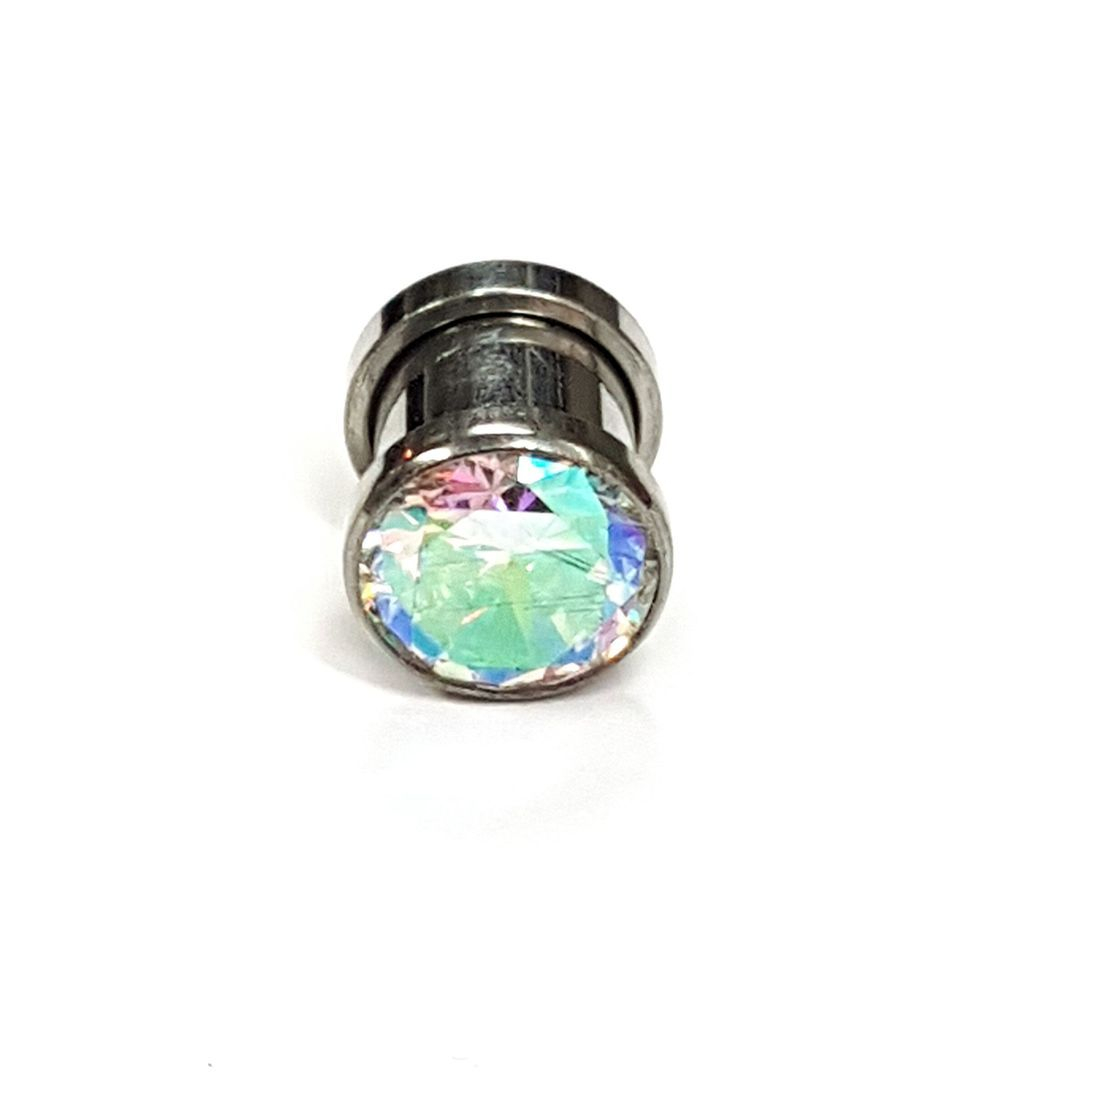 8mm titanium plug available at kazbah online or our Leicester City Centre Store